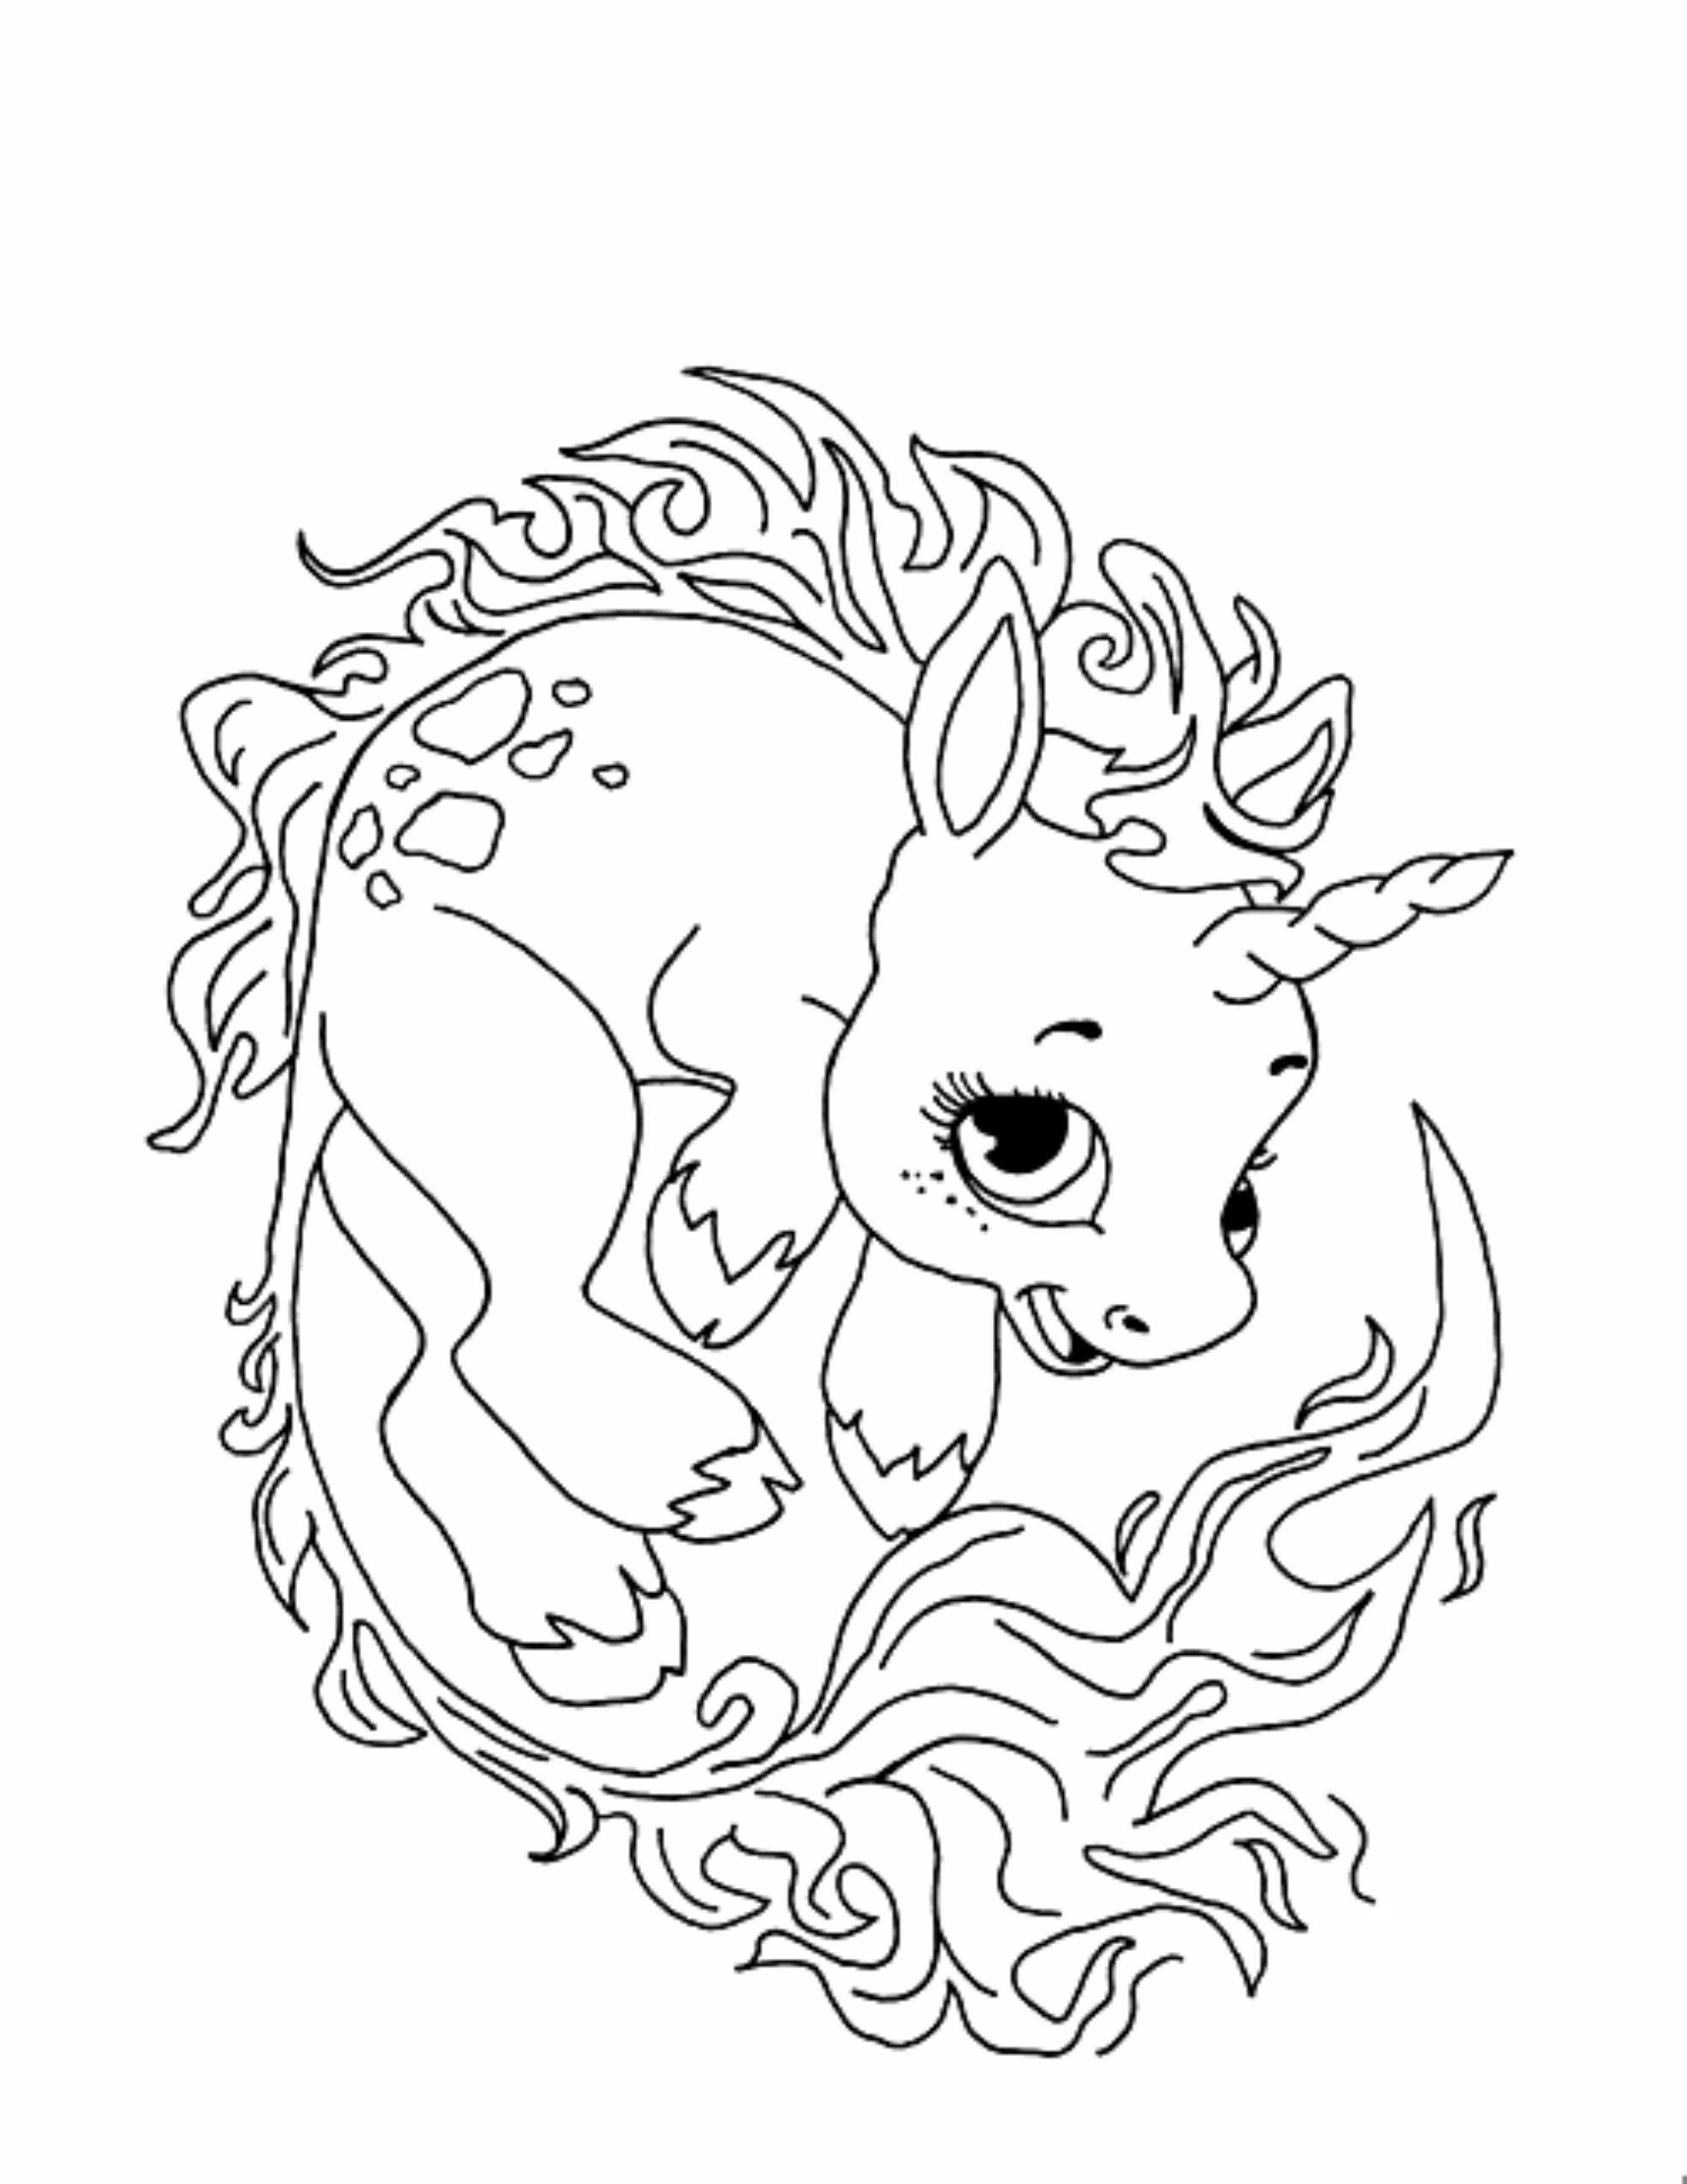 Beanie Boos Coloring Pages  Download 14i - Free Download